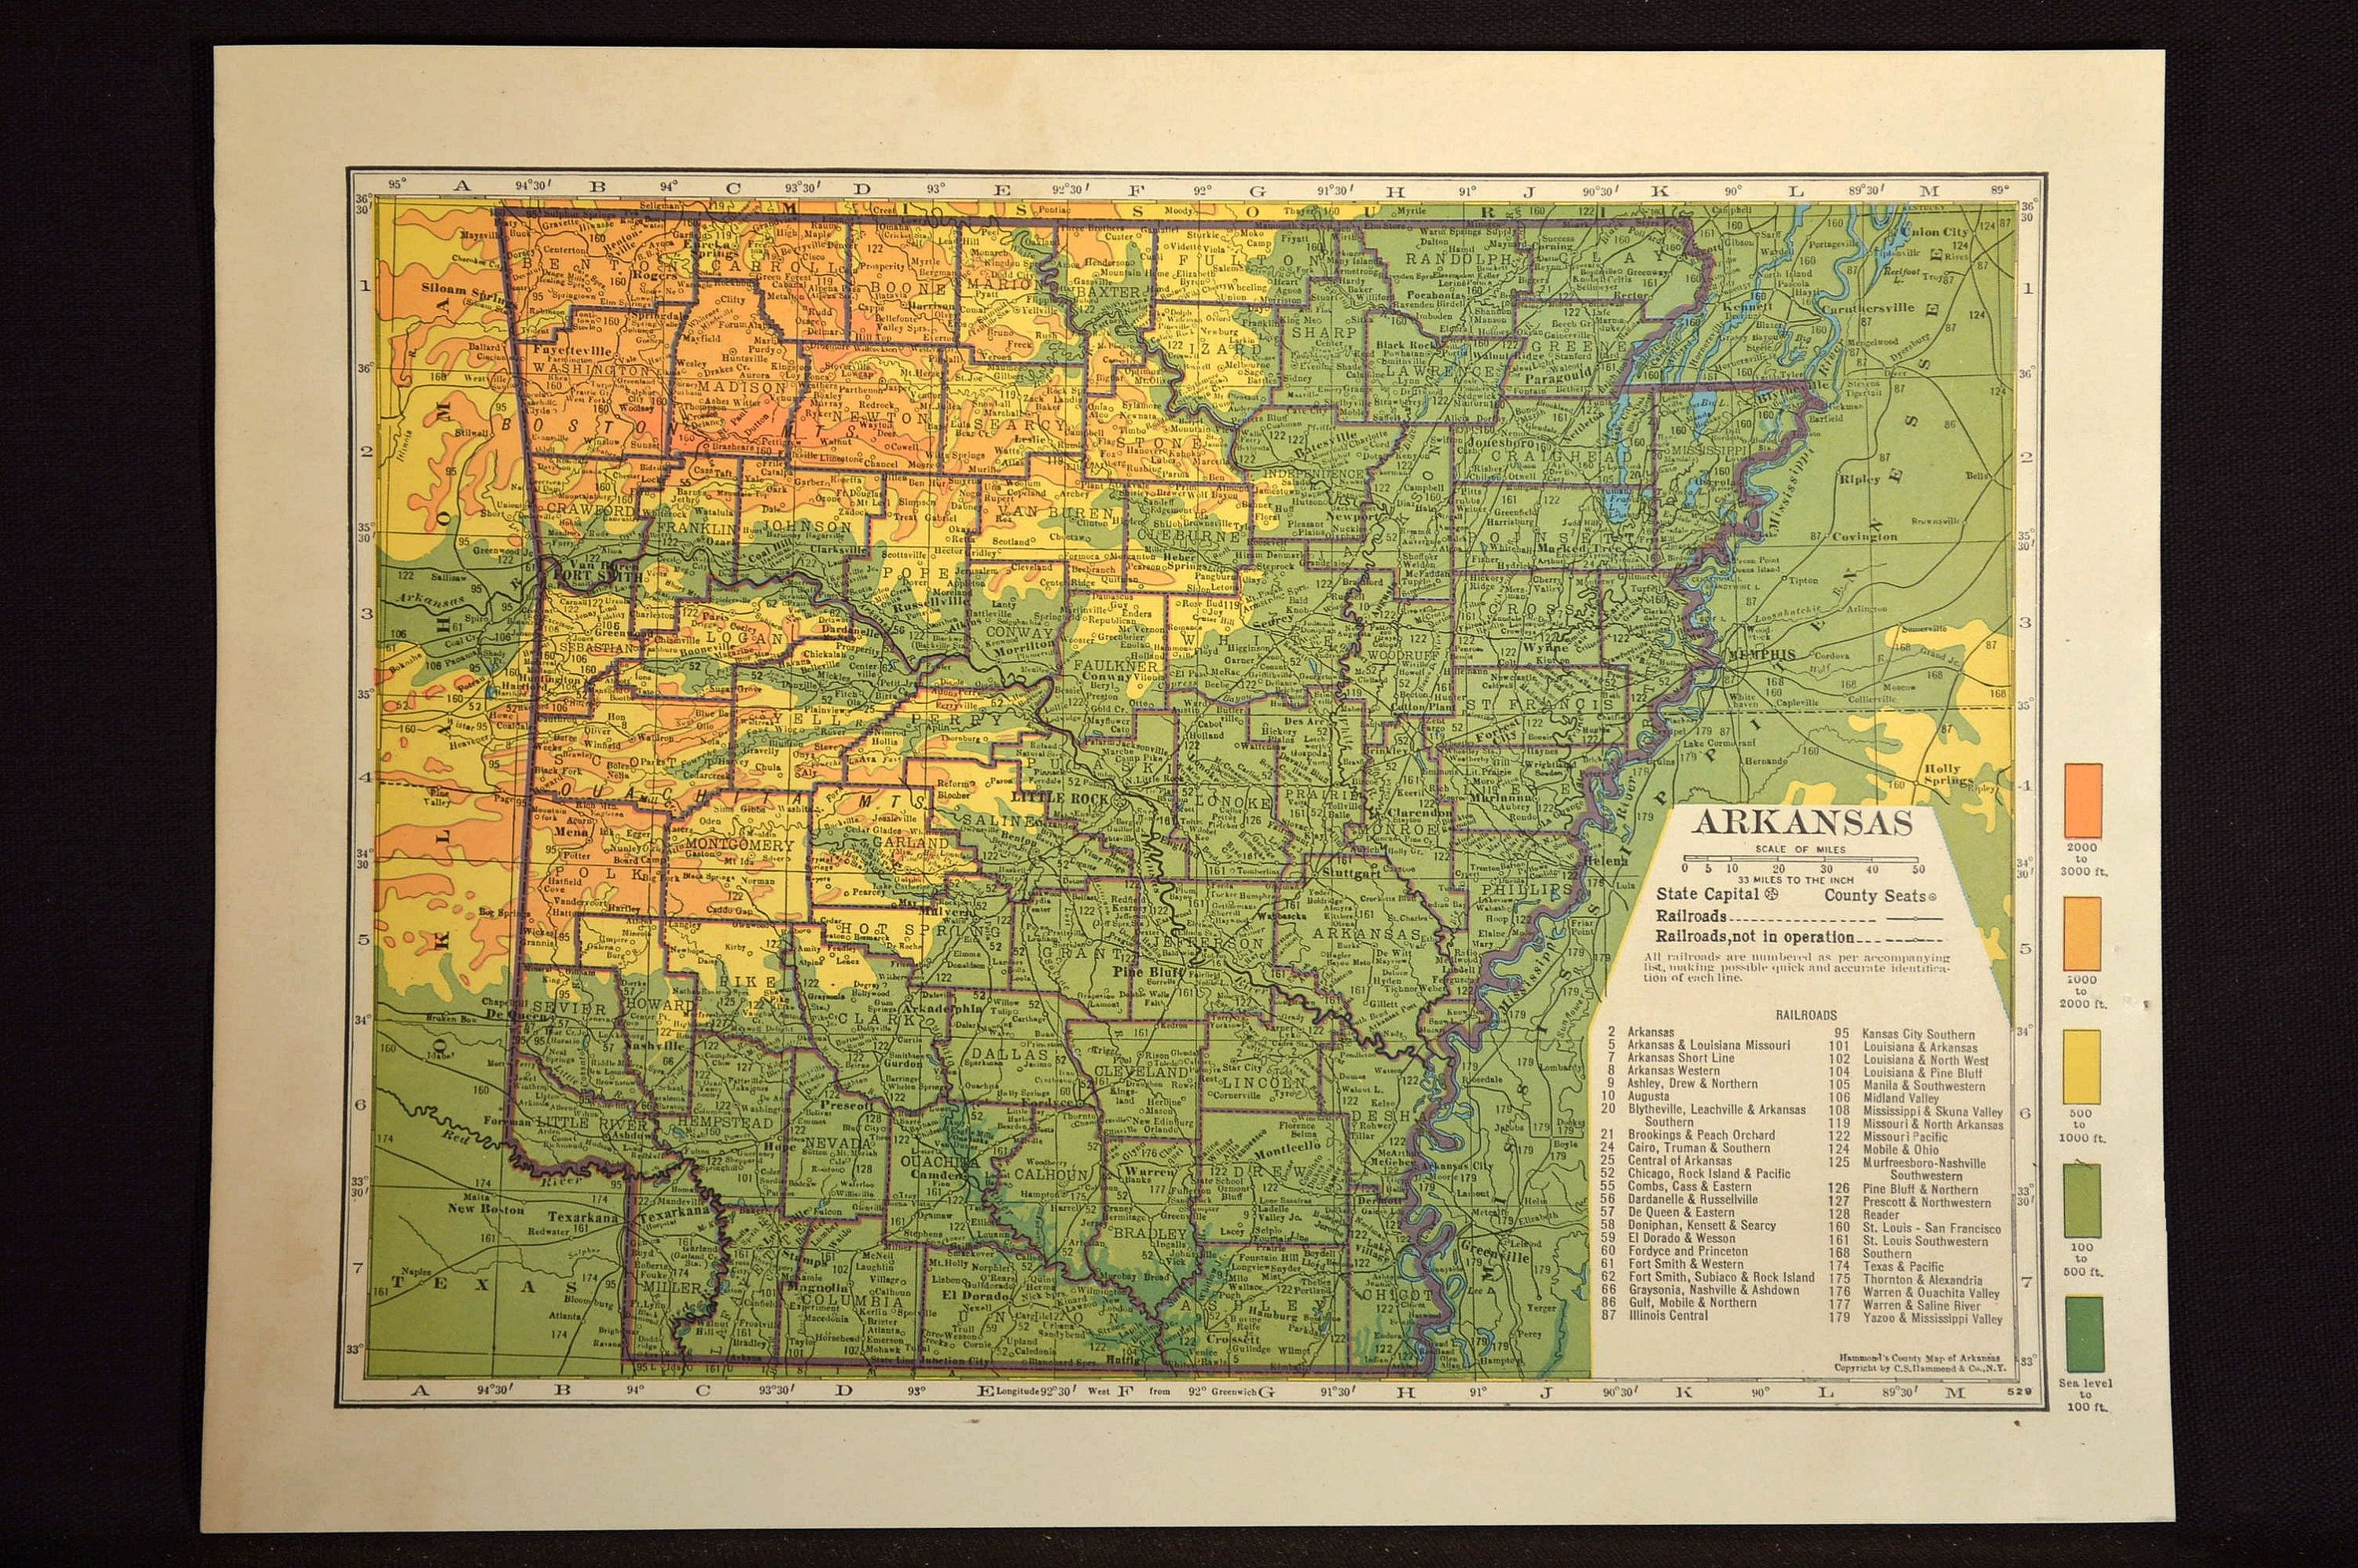 Arkansas Map Arkansas Topographic Map Colorful Colored | Map Wall ...